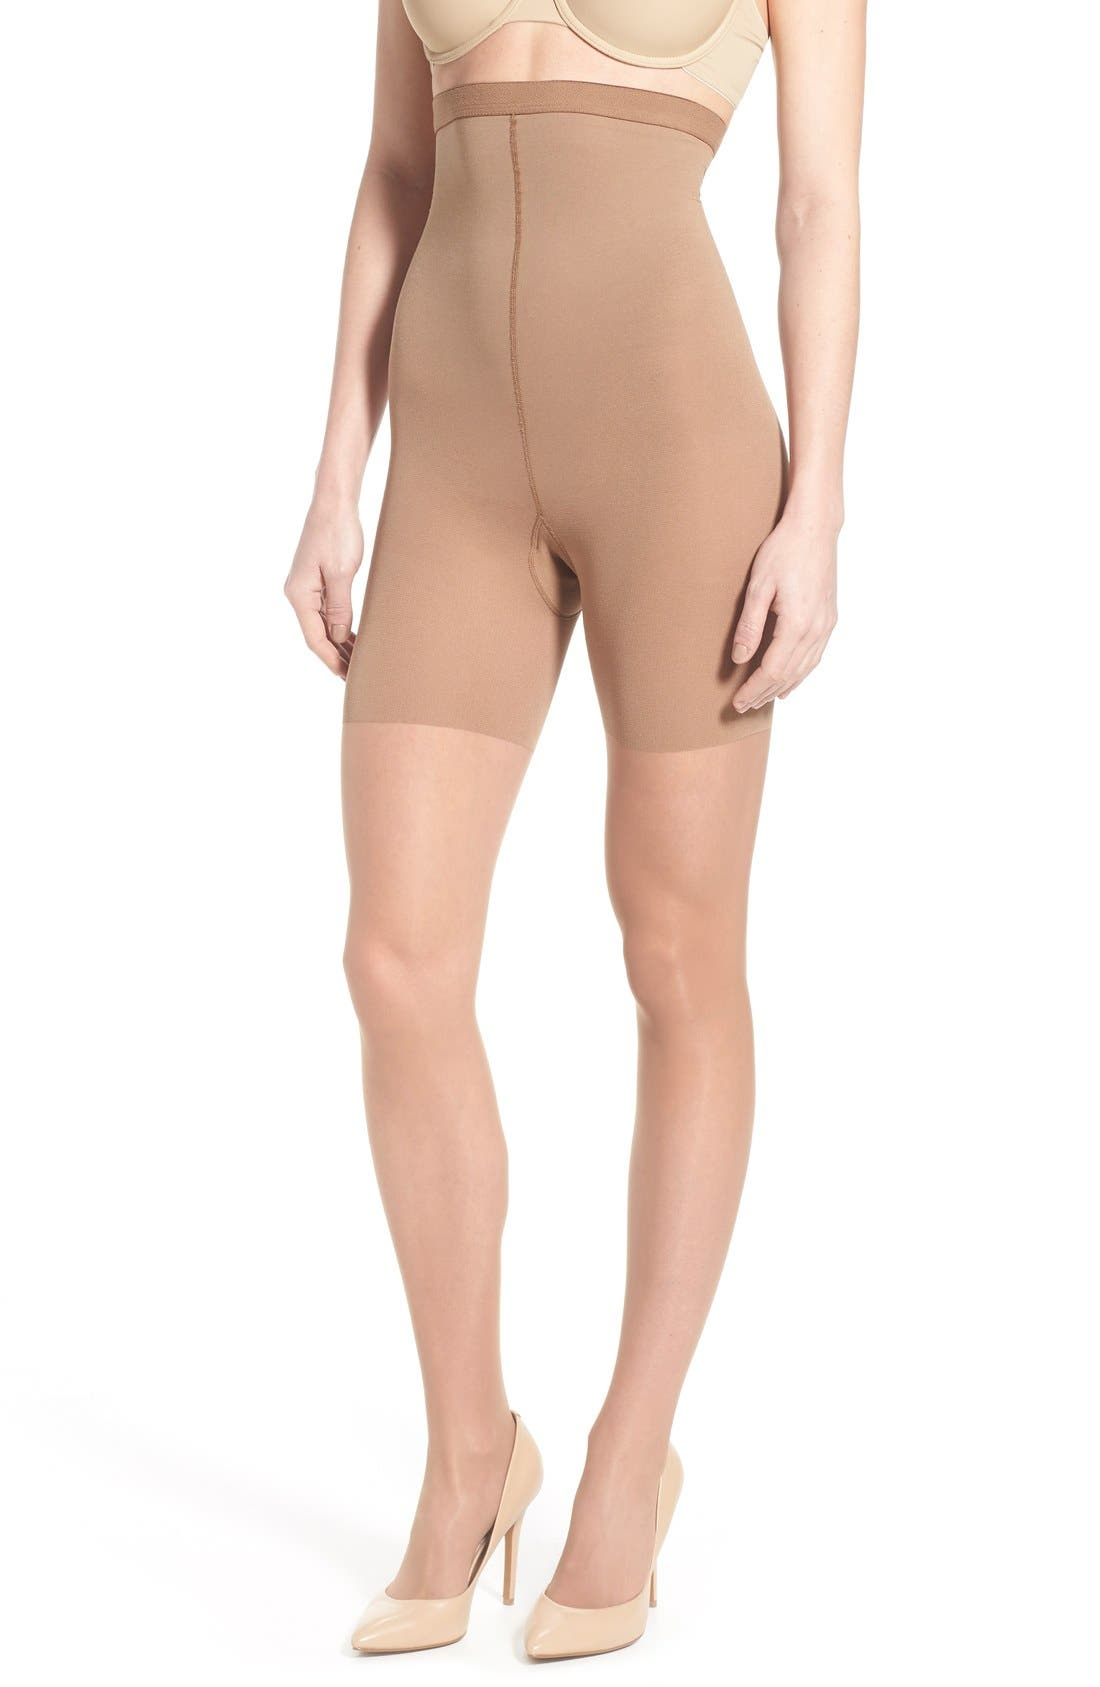 Alternate Image 1 Selected - SPANX® Luxe High Waist Shaping Pantyhose